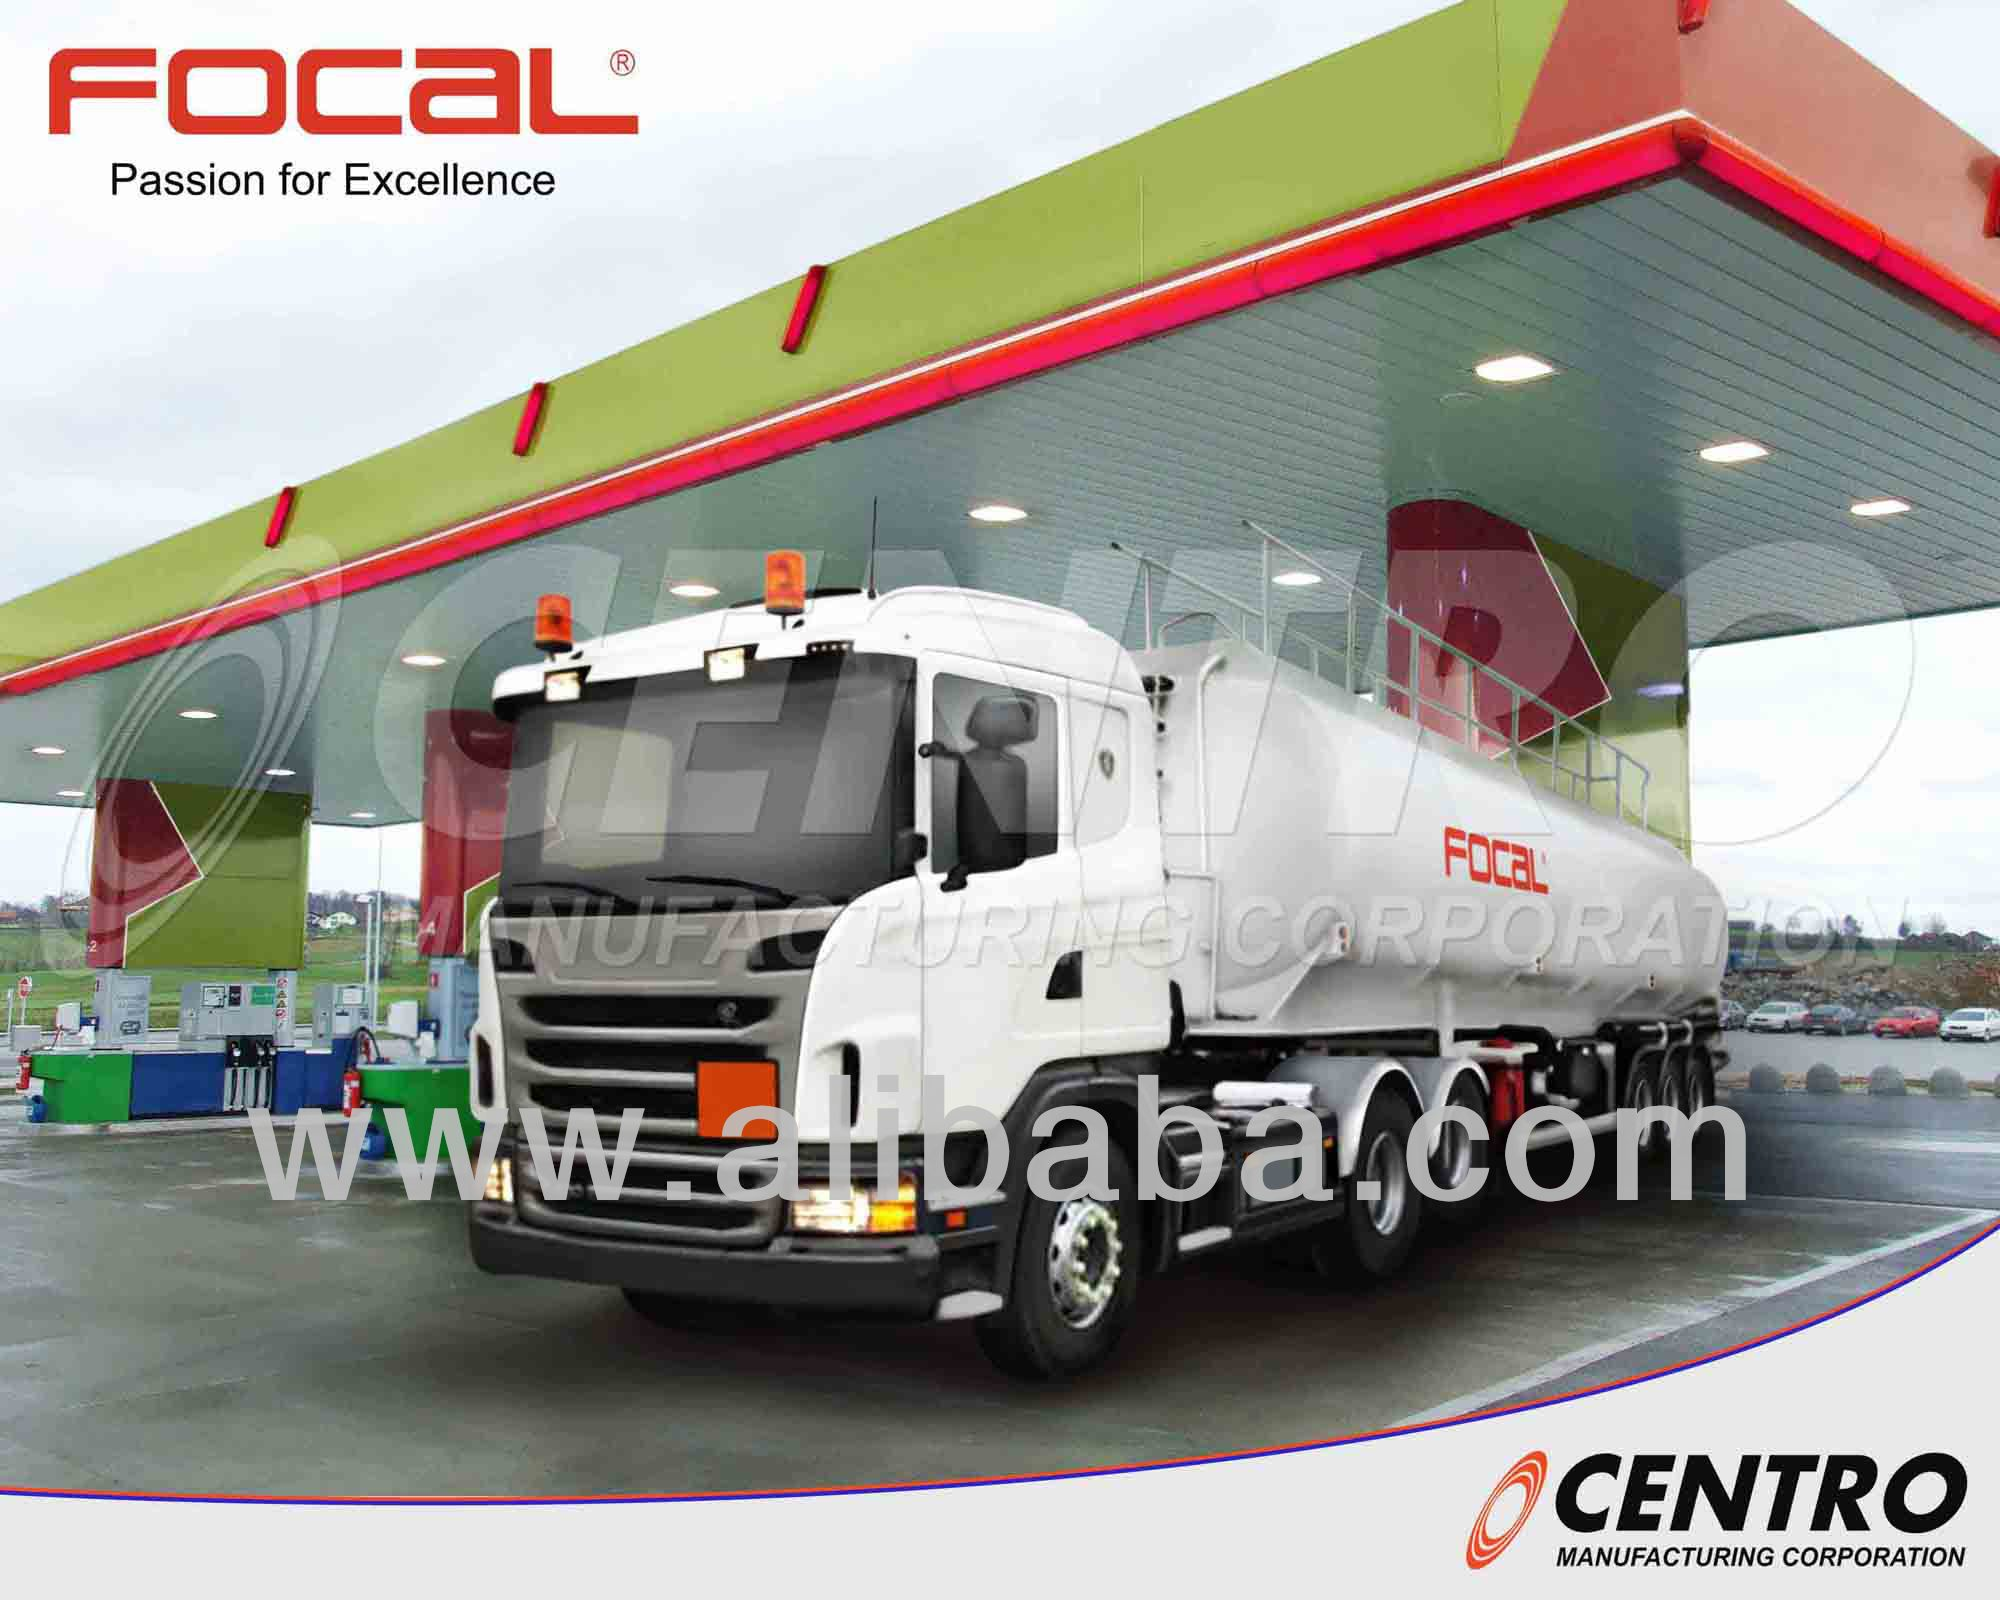 FUEL TANKER - FOCAL (CALL US;4806557/ 09228393712)